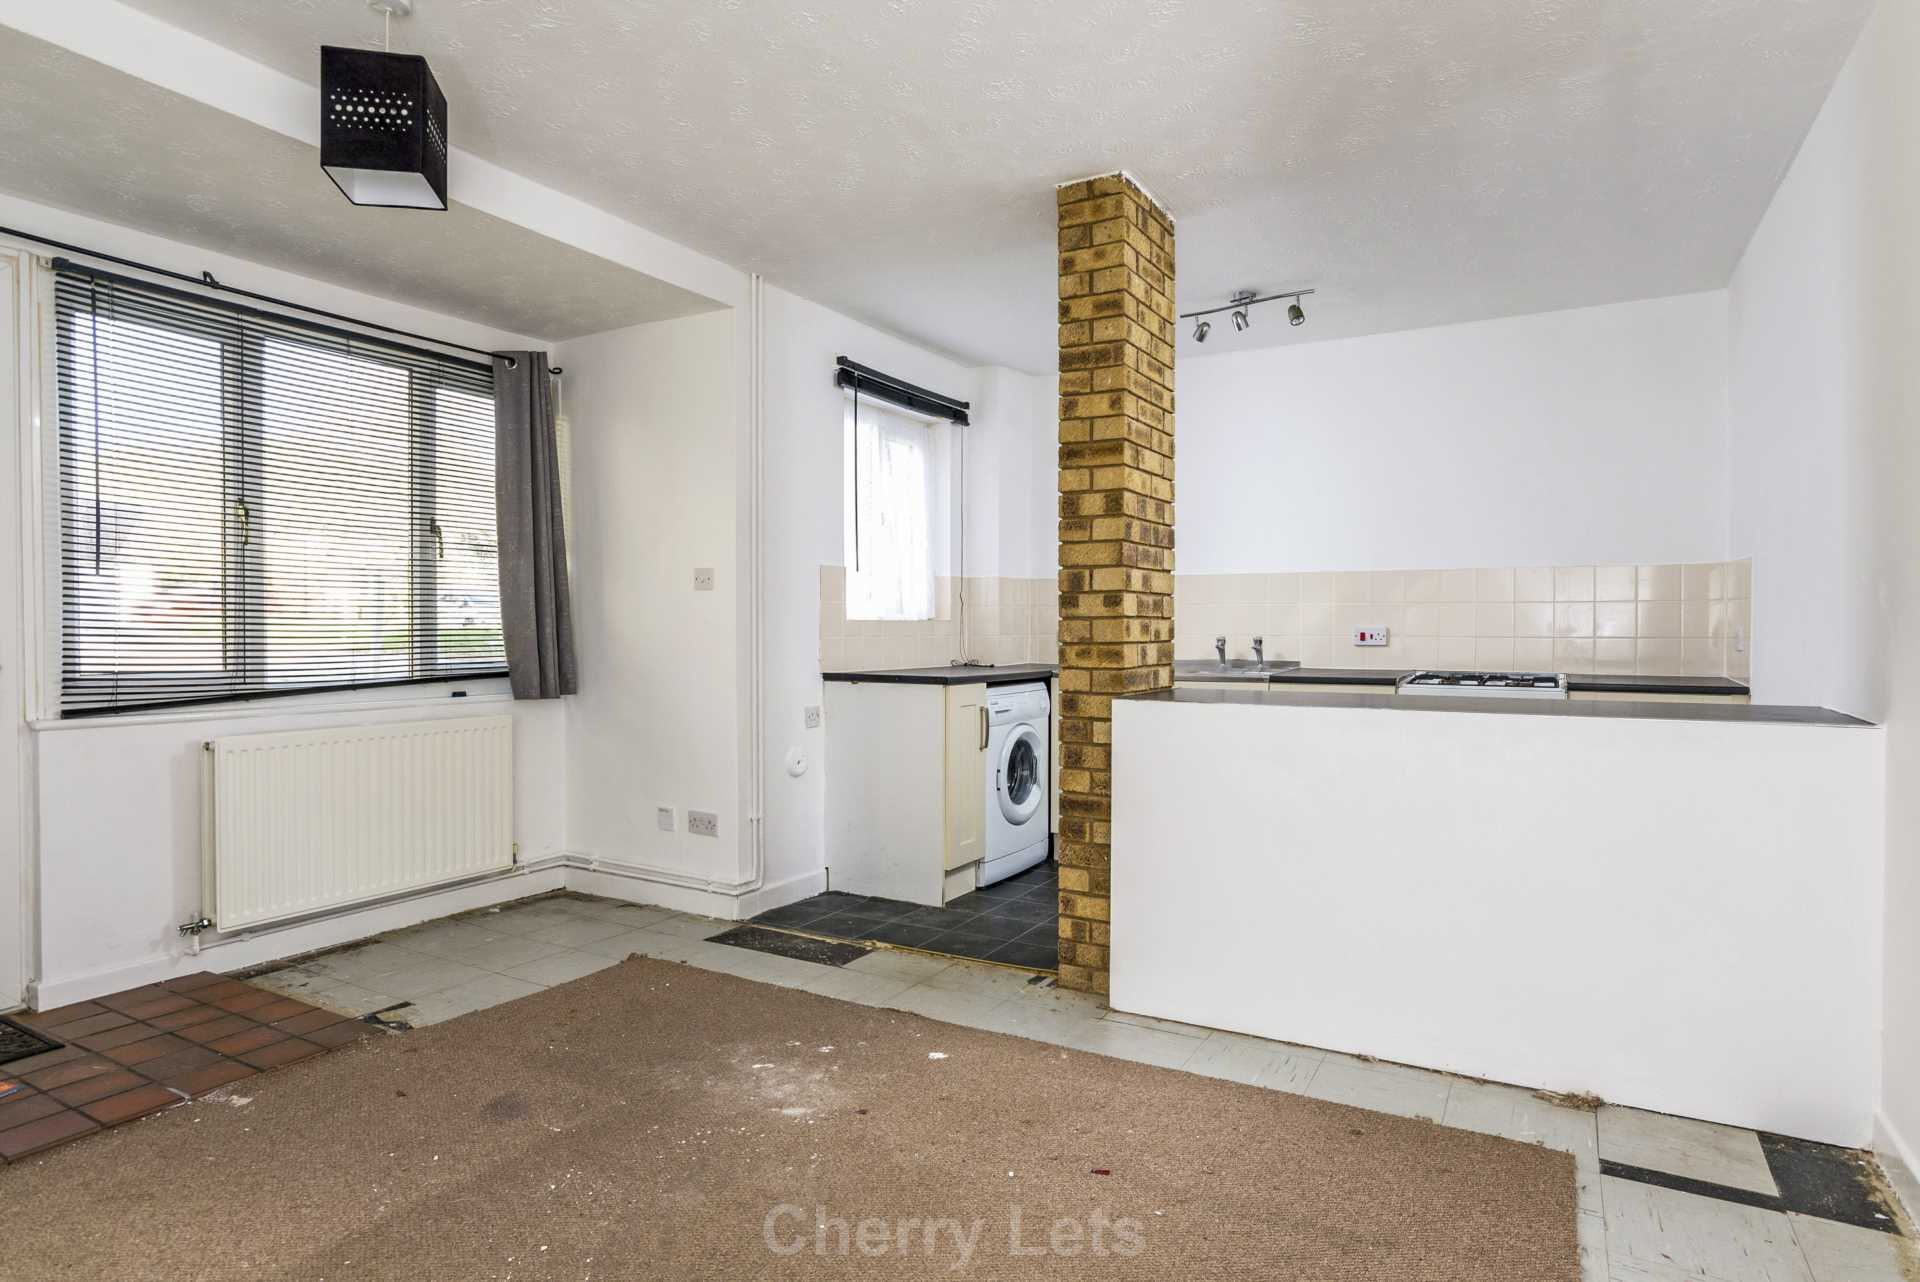 1 bed end of terrace house to rent in Bedford Close, Banbury, OX16 3